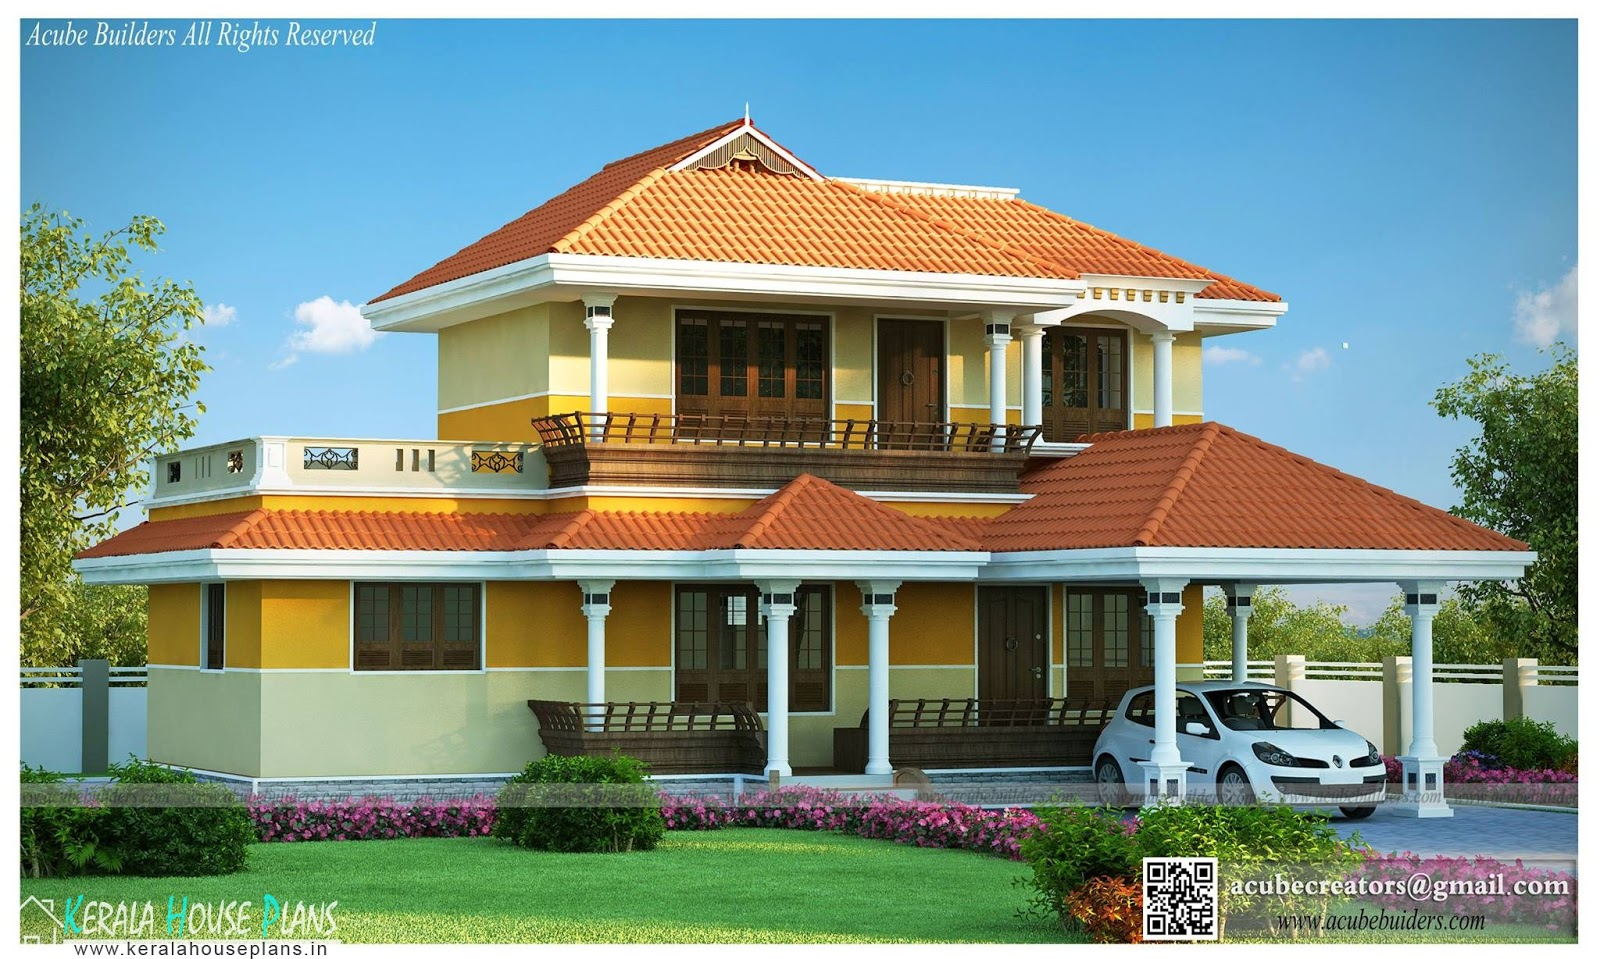 Traditional house plans in kerala kerala house plans for Kerala house plans and designs